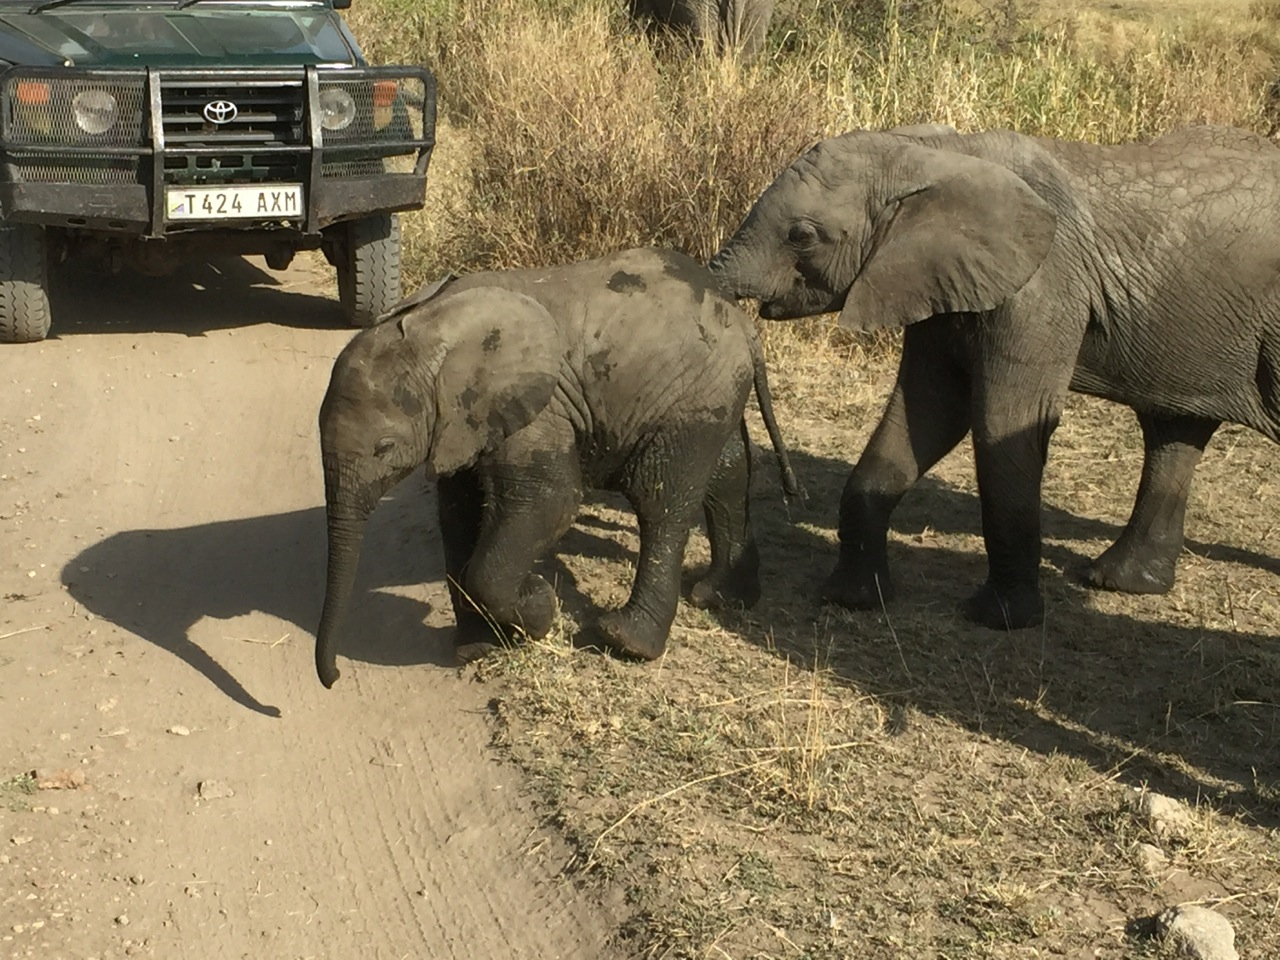 Two elephant calves cross the road in front of a stopped safari vehicle.